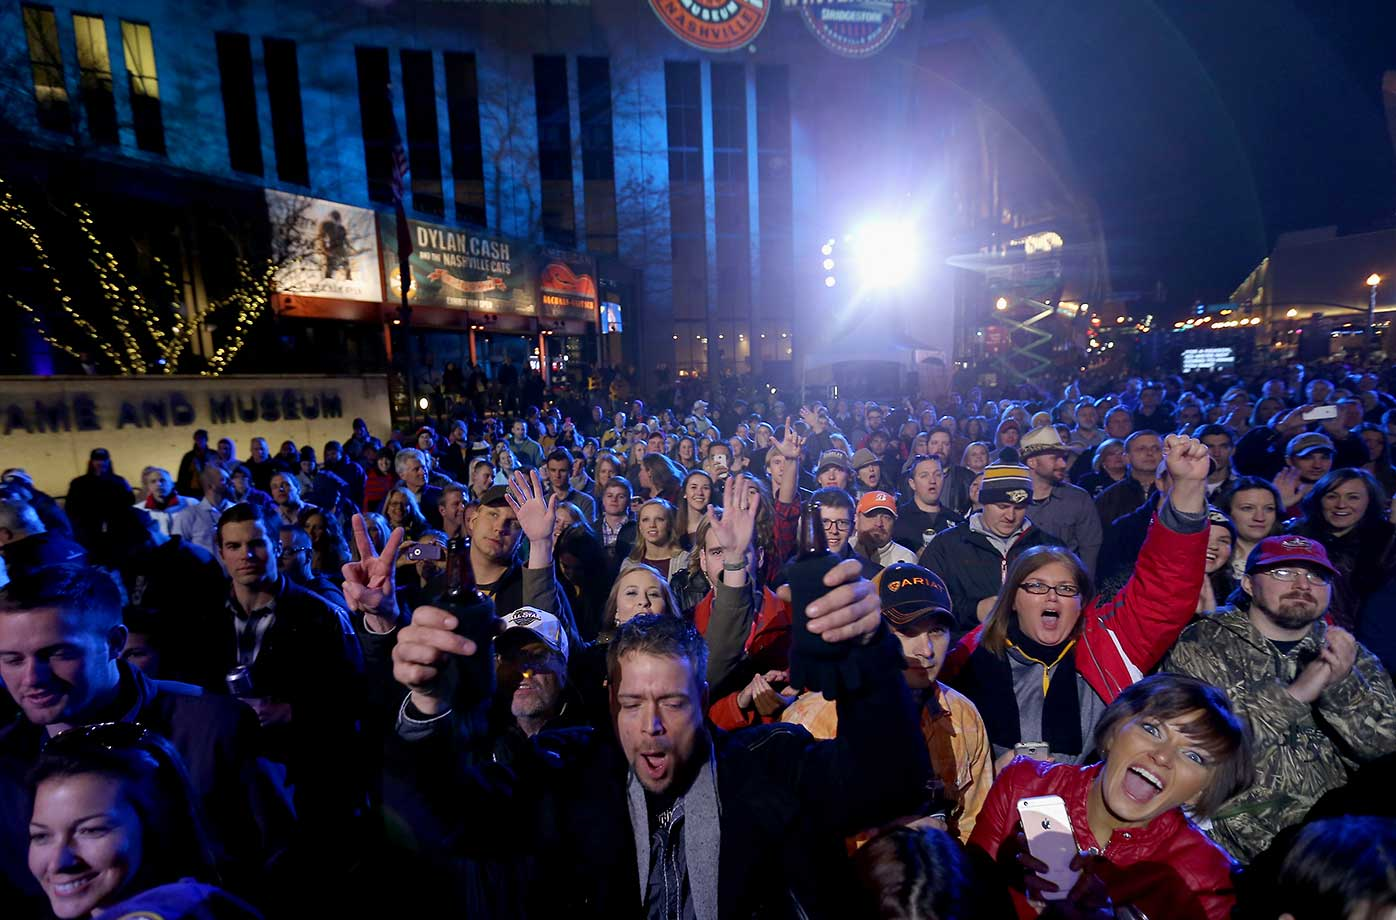 The crowd gathers for the 2016 NHL All-Star Friday Night at the Honda Stage at Bridgestone Winter Park in Nashville, Tenn.